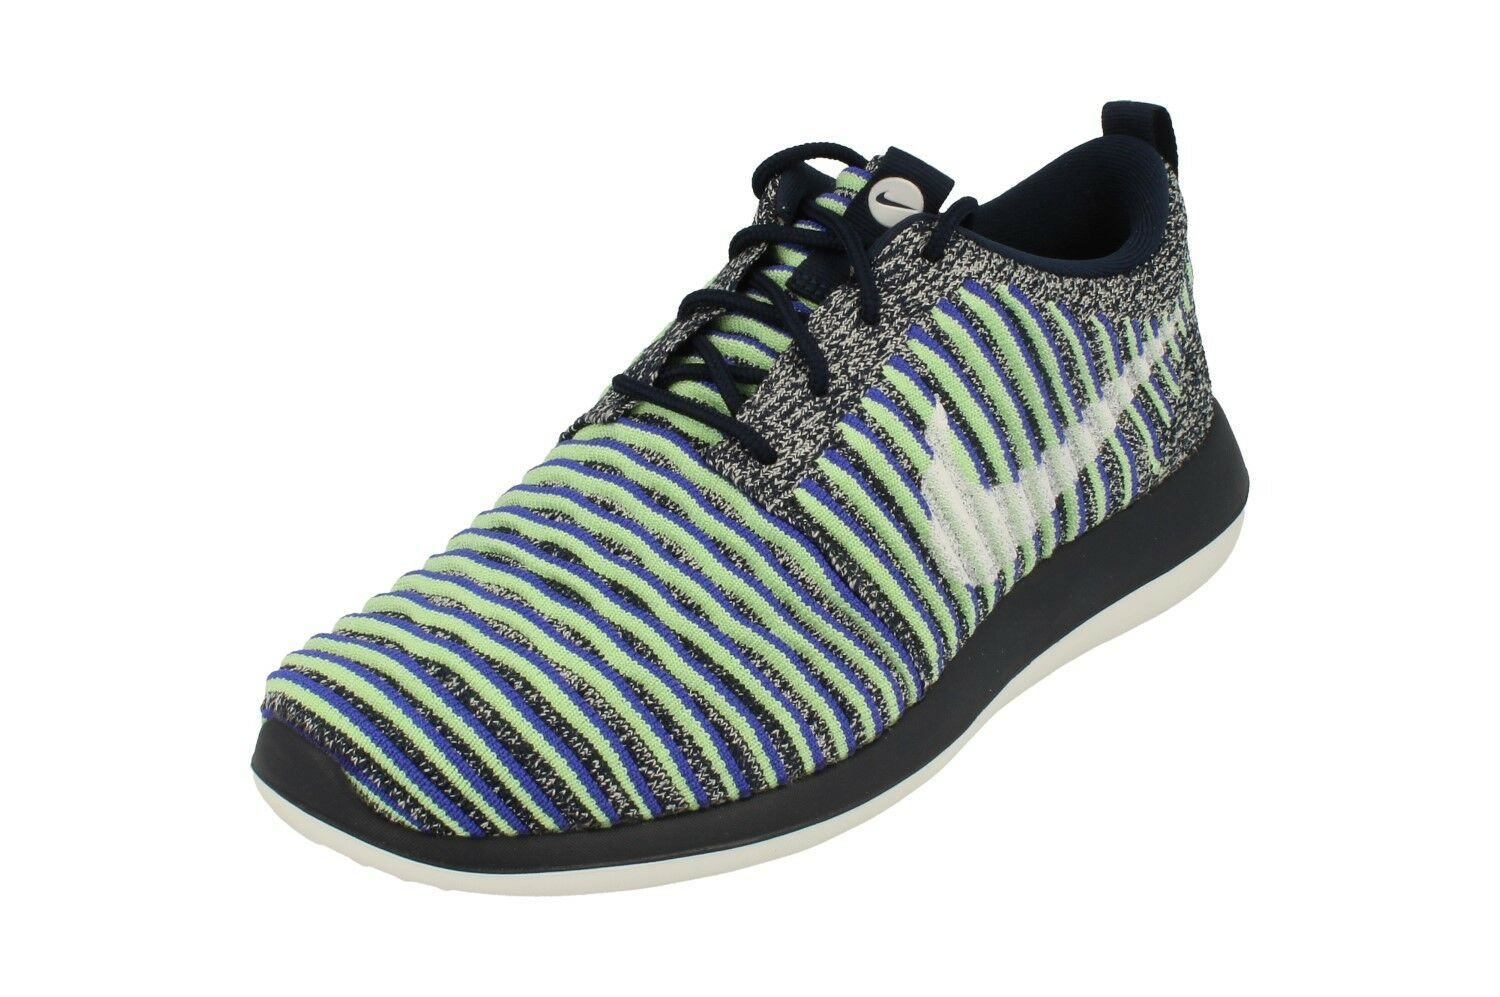 Nike Femme Roshe Two Flyknit Running Trainers 844929 Sneakers Chaussures 401